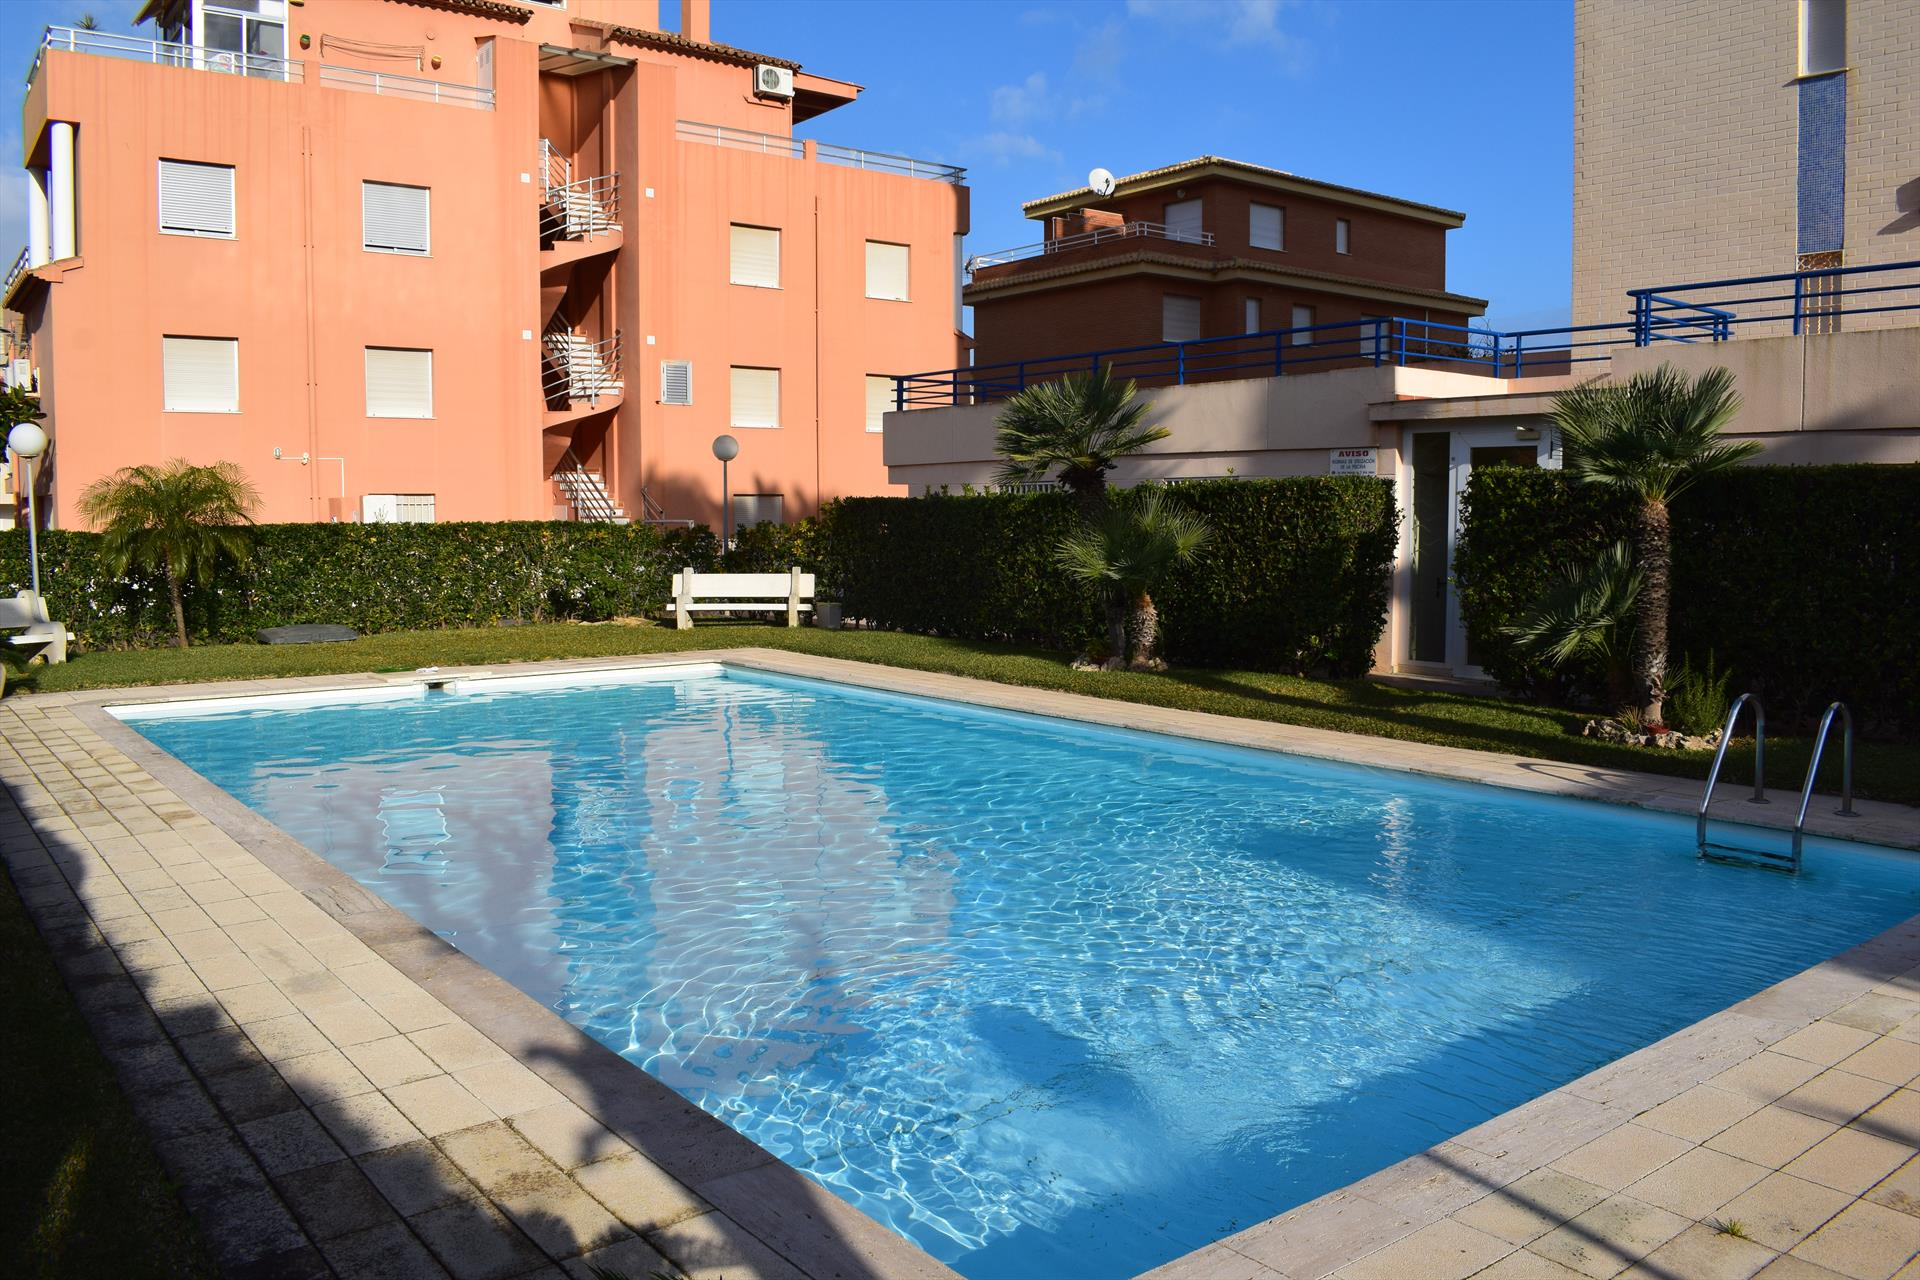 Aguamarina Dunas Sector 5 AP111, Beautiful and cheerful apartment in Oliva, on the Costa Blanca, Spain  with communal pool for 4 persons.....